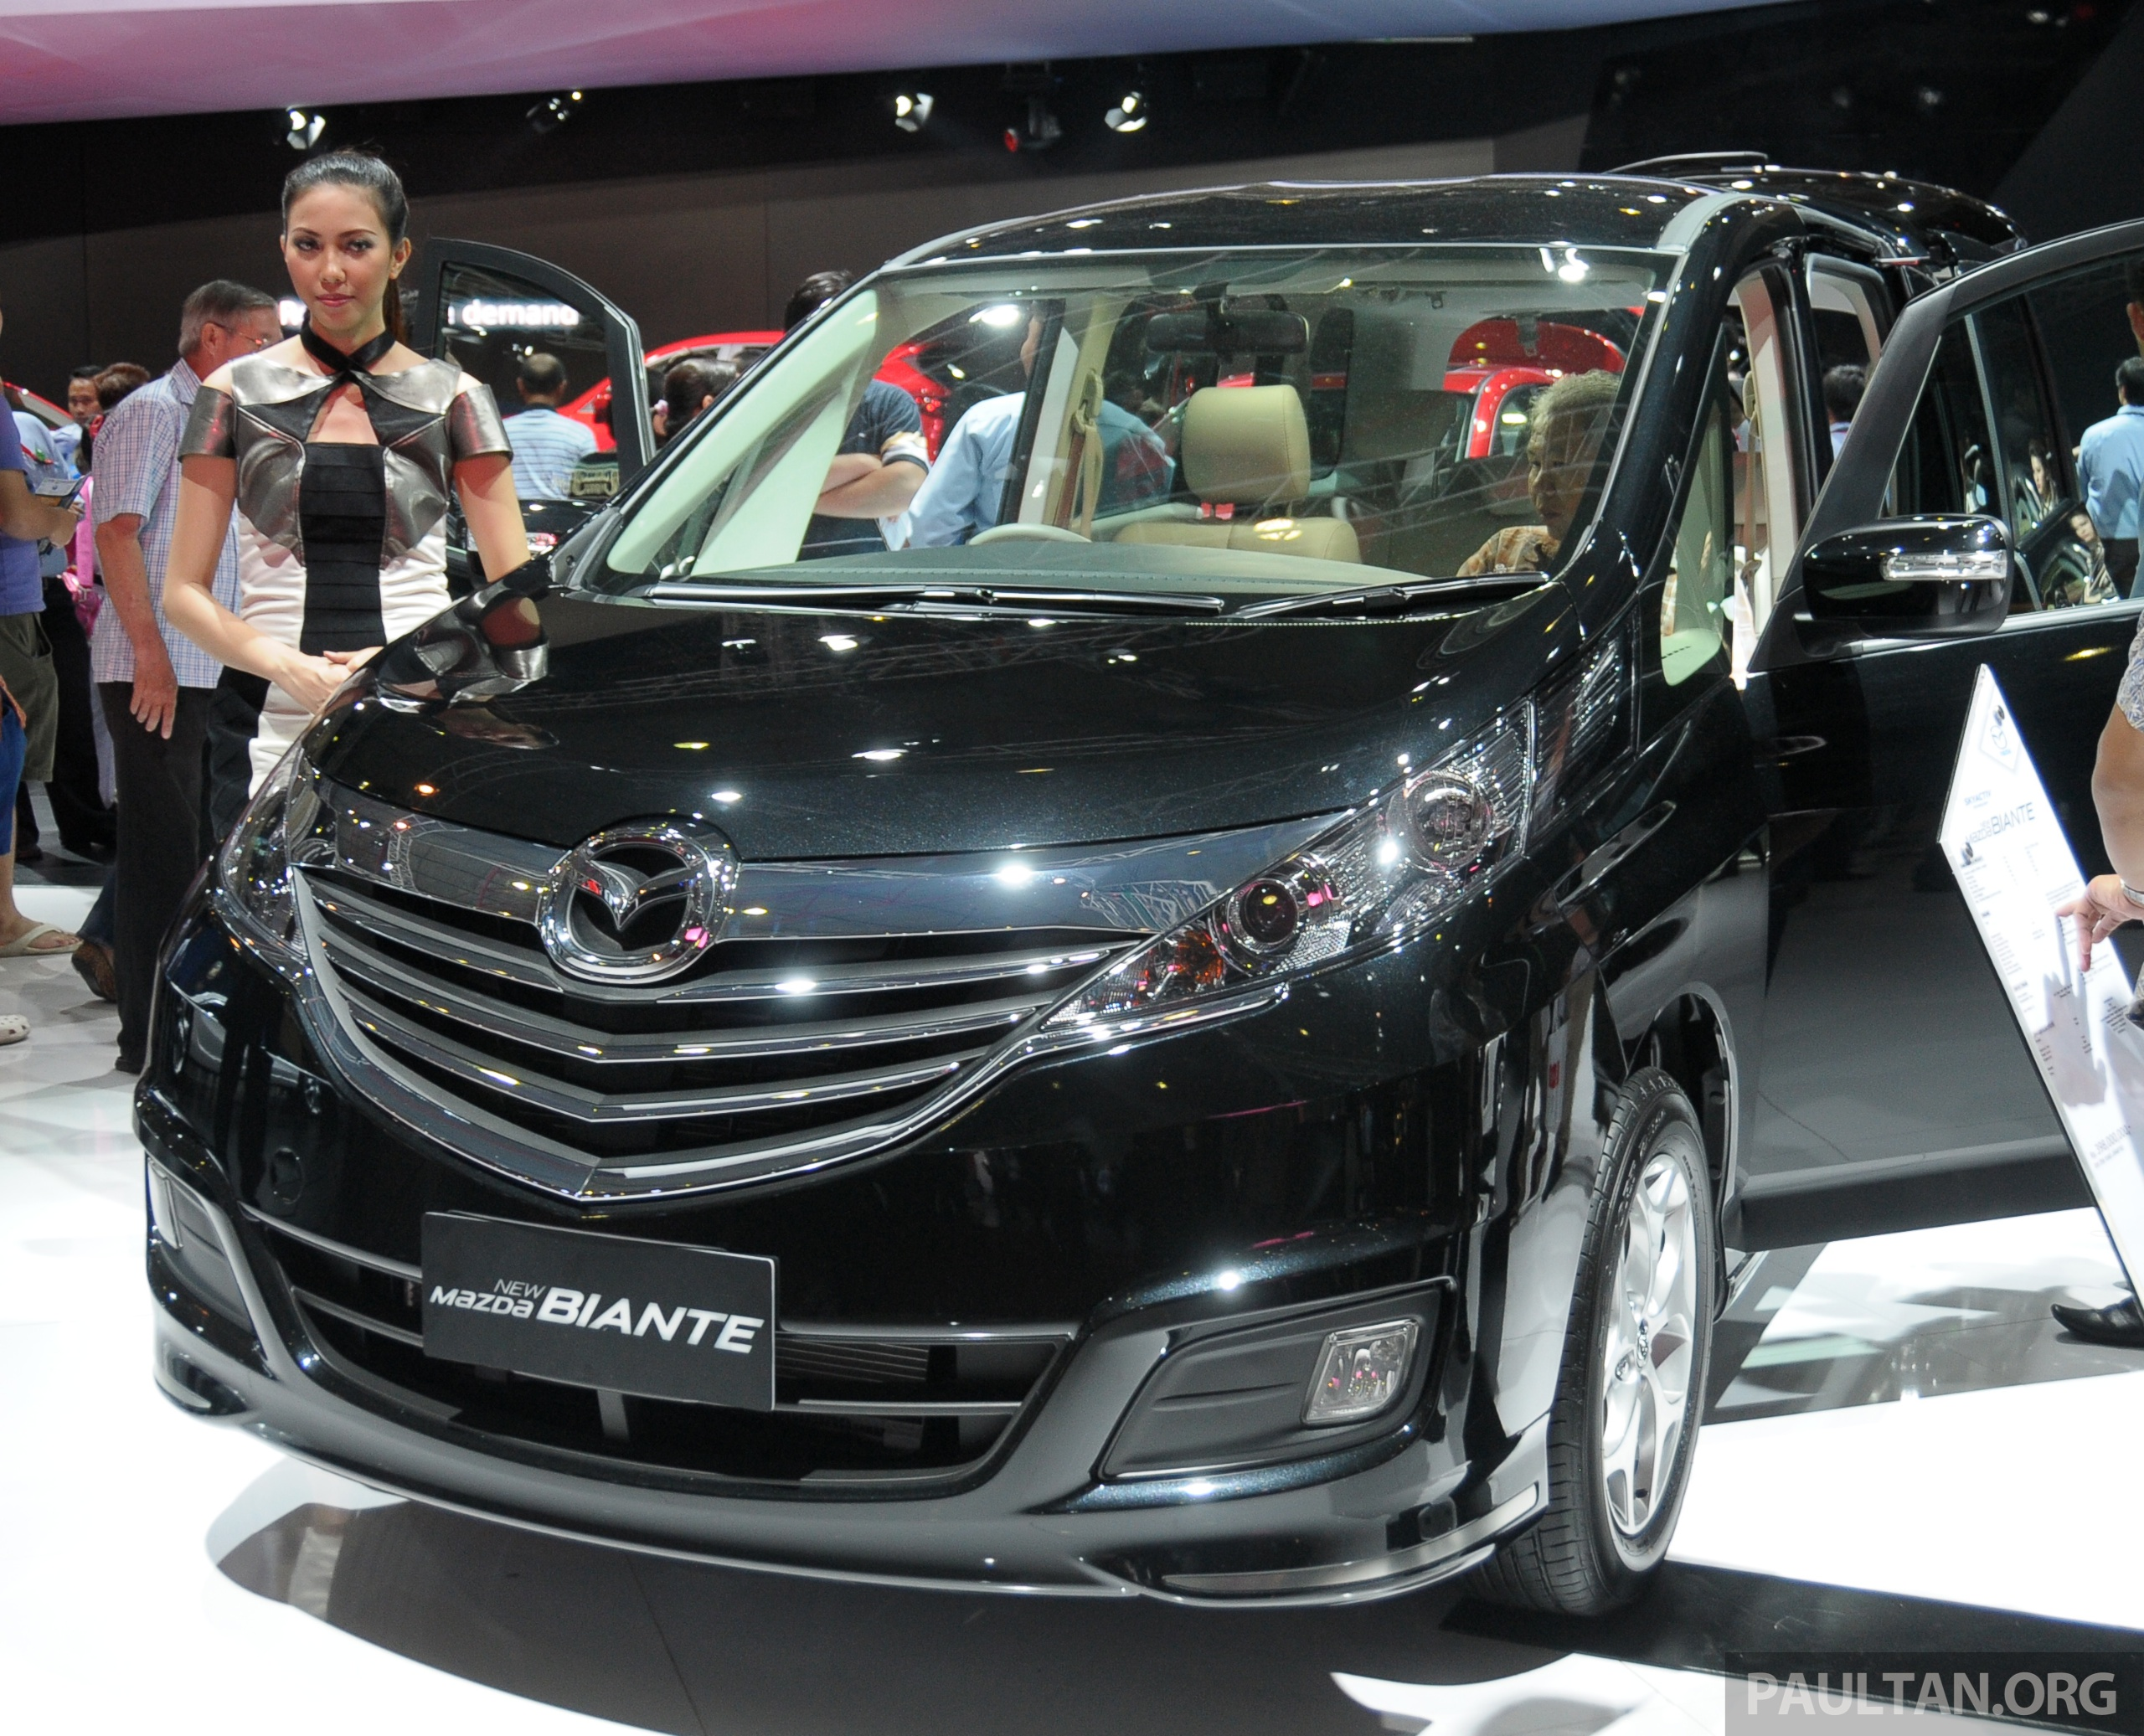 Mazda Biante To Debut In Malaysia In Nov, Along With CX-9